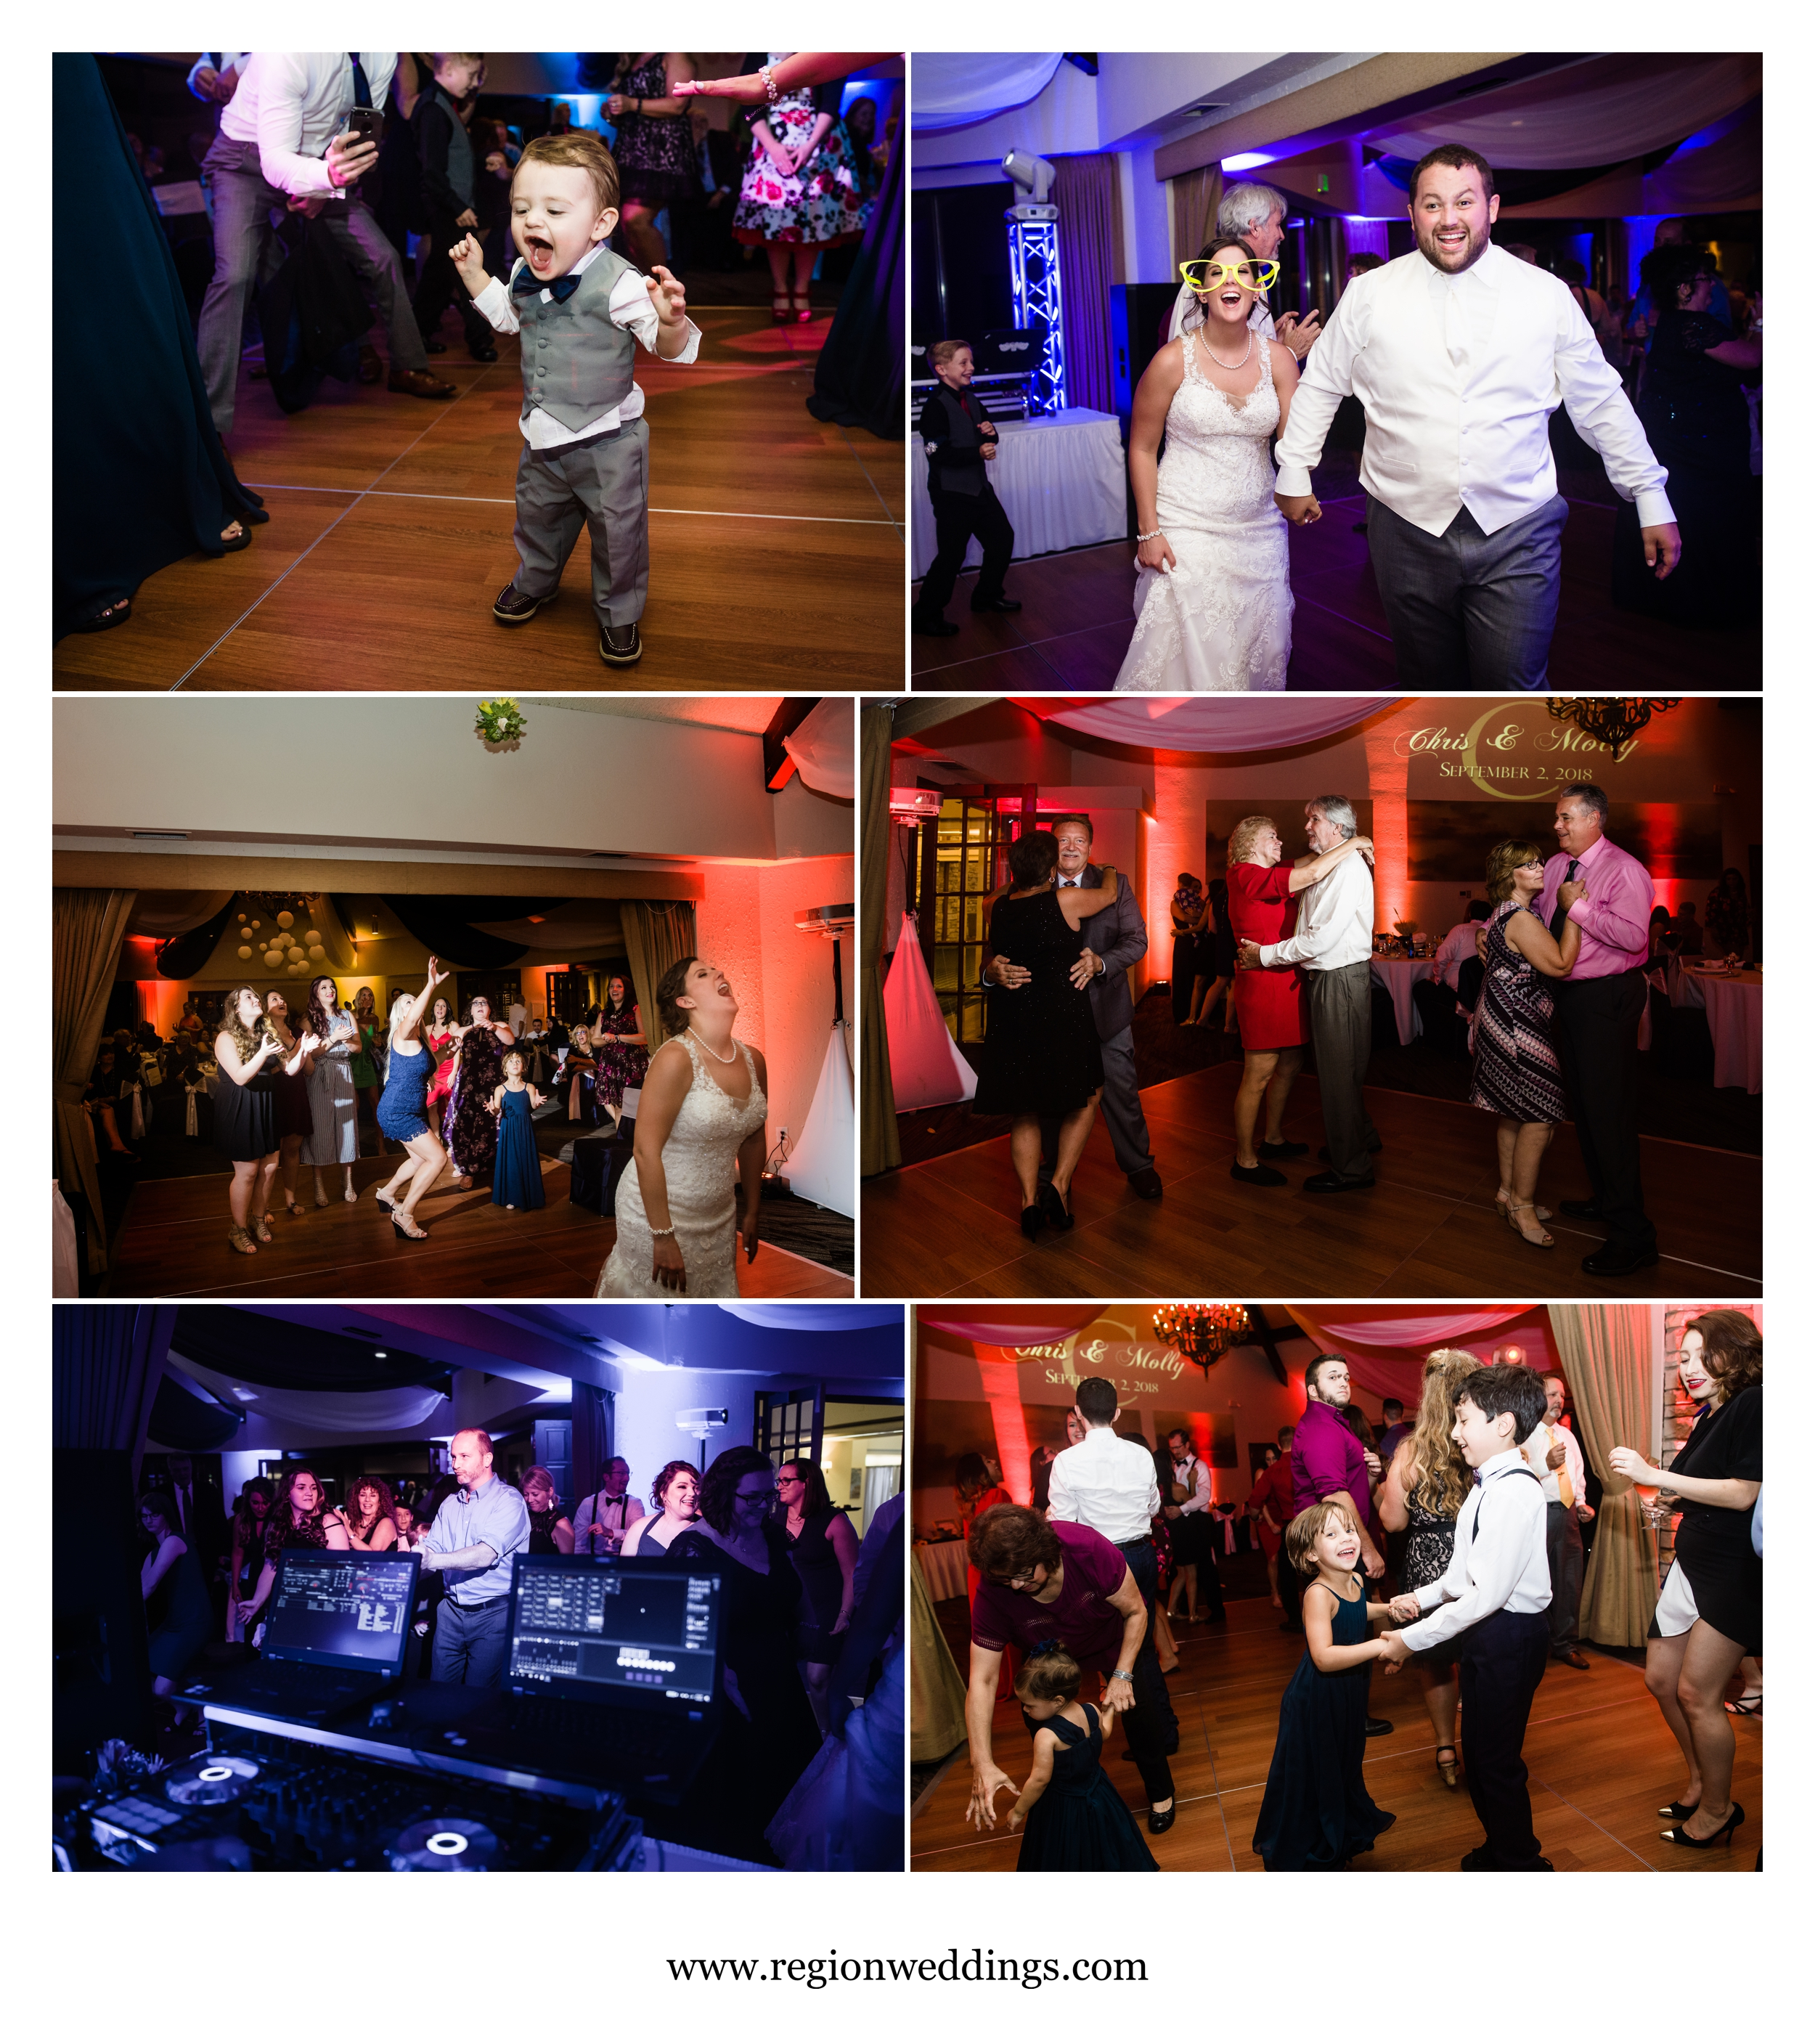 Party on the dance floor at Briar Ridge.